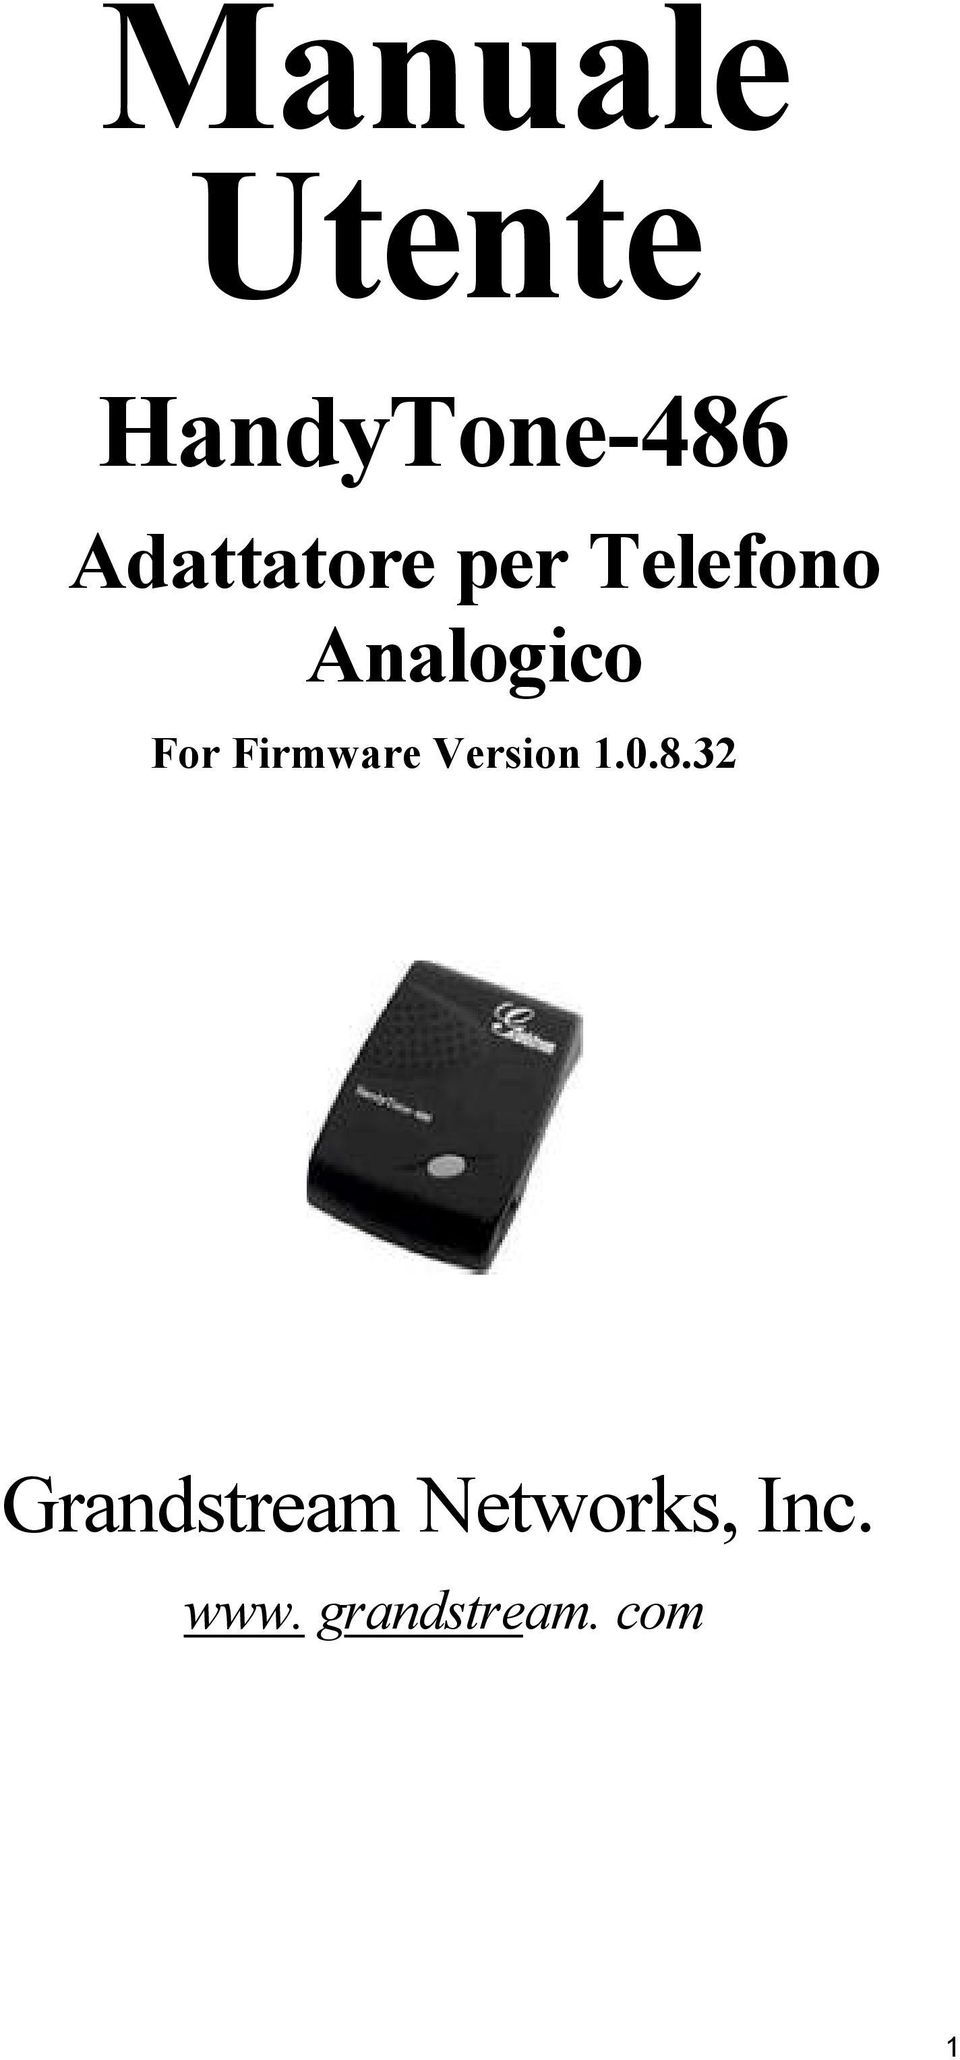 Analogico For Firmware